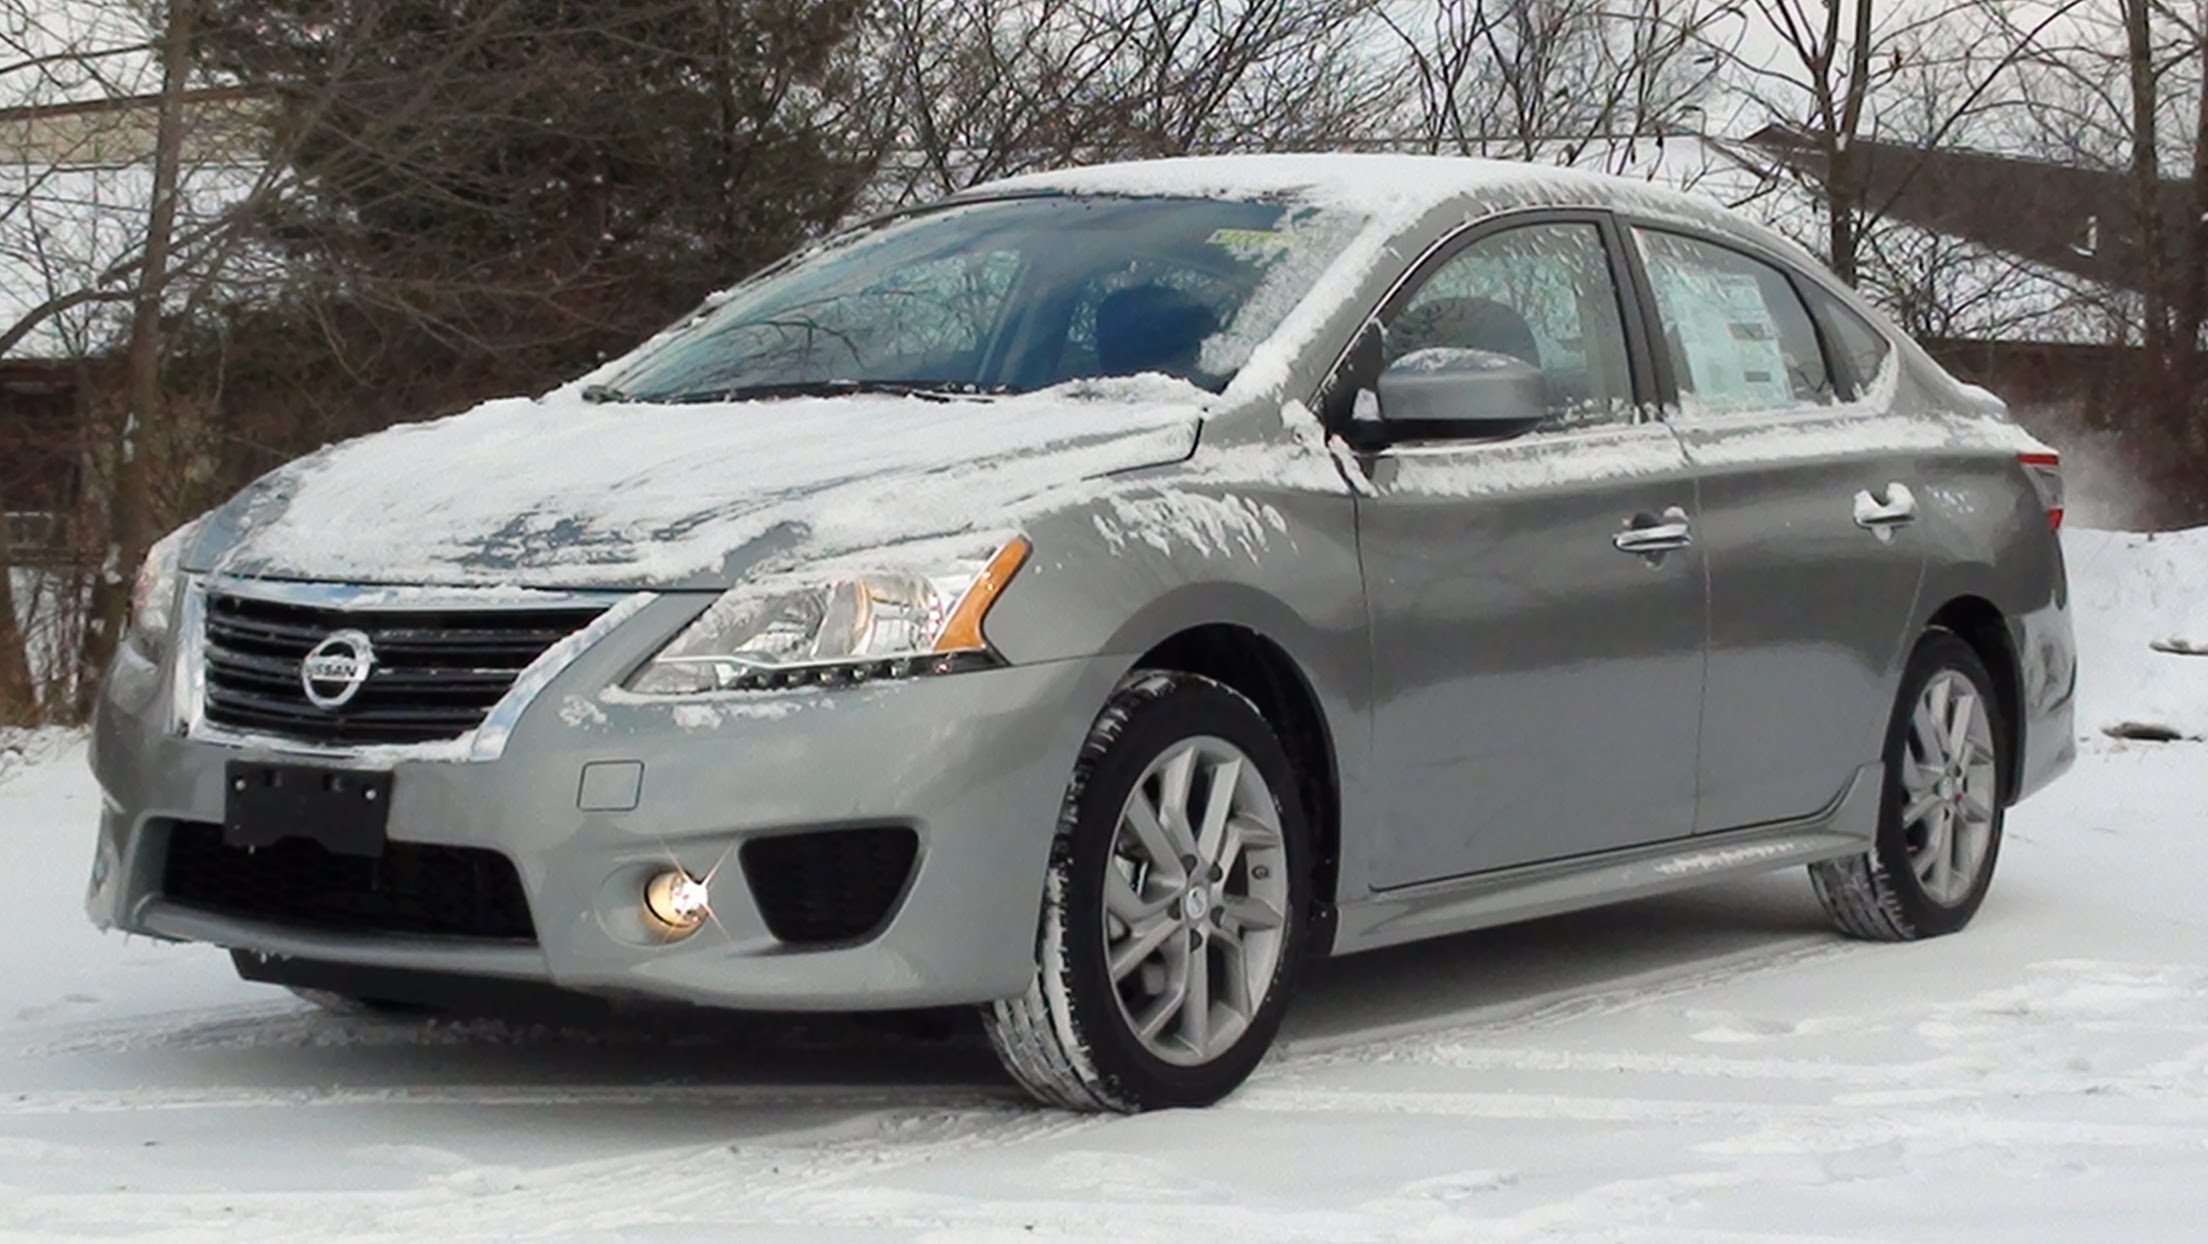 2014 Nissan Sentra Photos, Informations, Articles ...